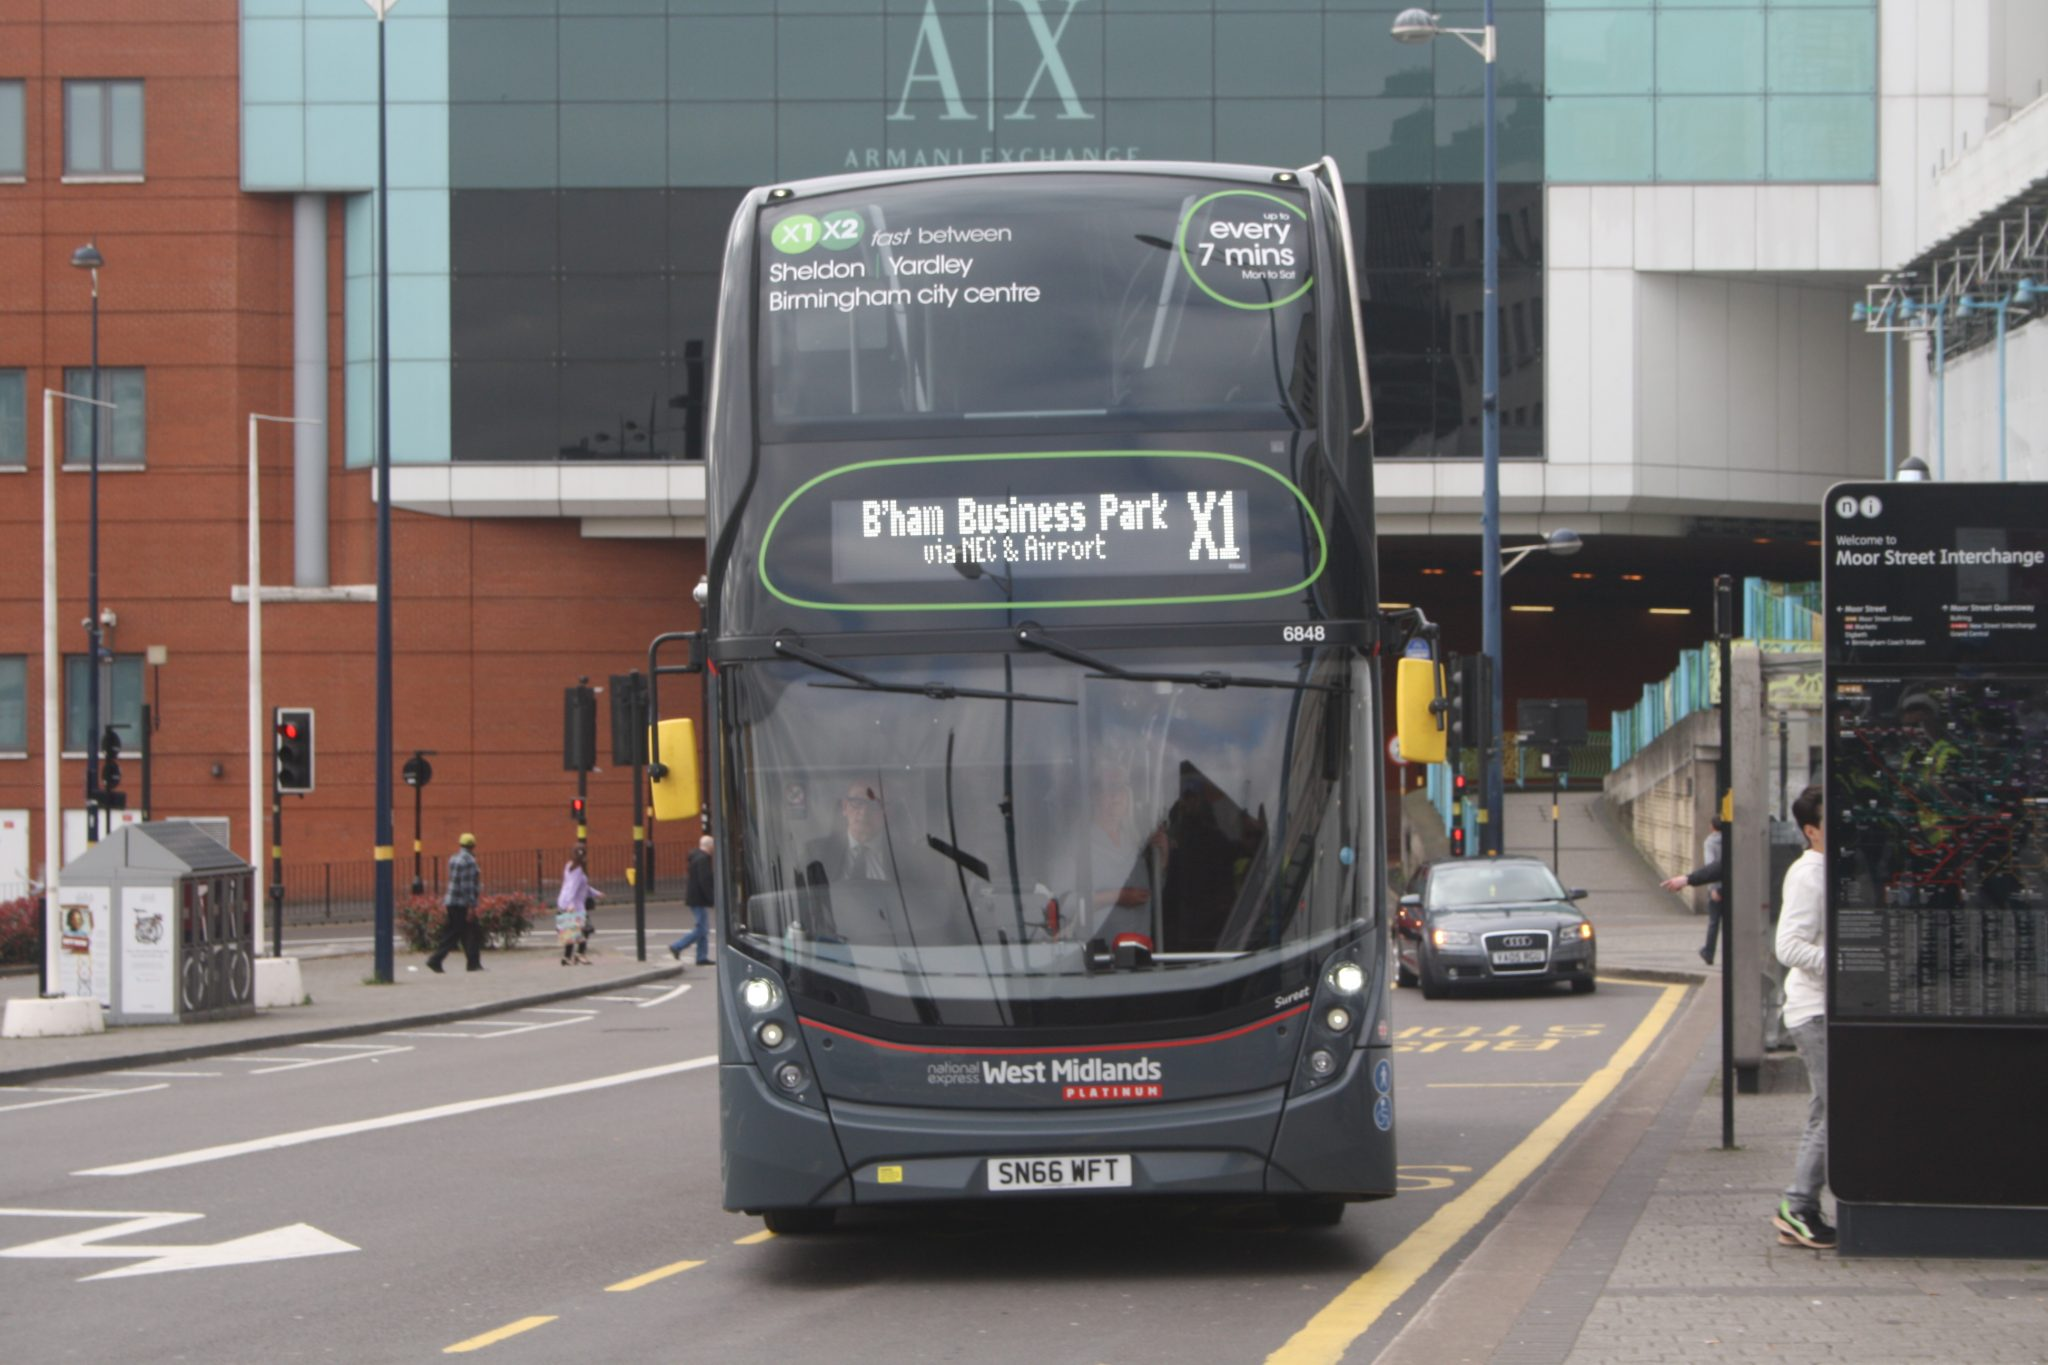 National Express offers the only direct airport connection and links all the four major London airports, Heathrow, Gatwick, Luton and Stansted airports. They operate services a day between Heathrow and Gatwick which takes around 1 hour.